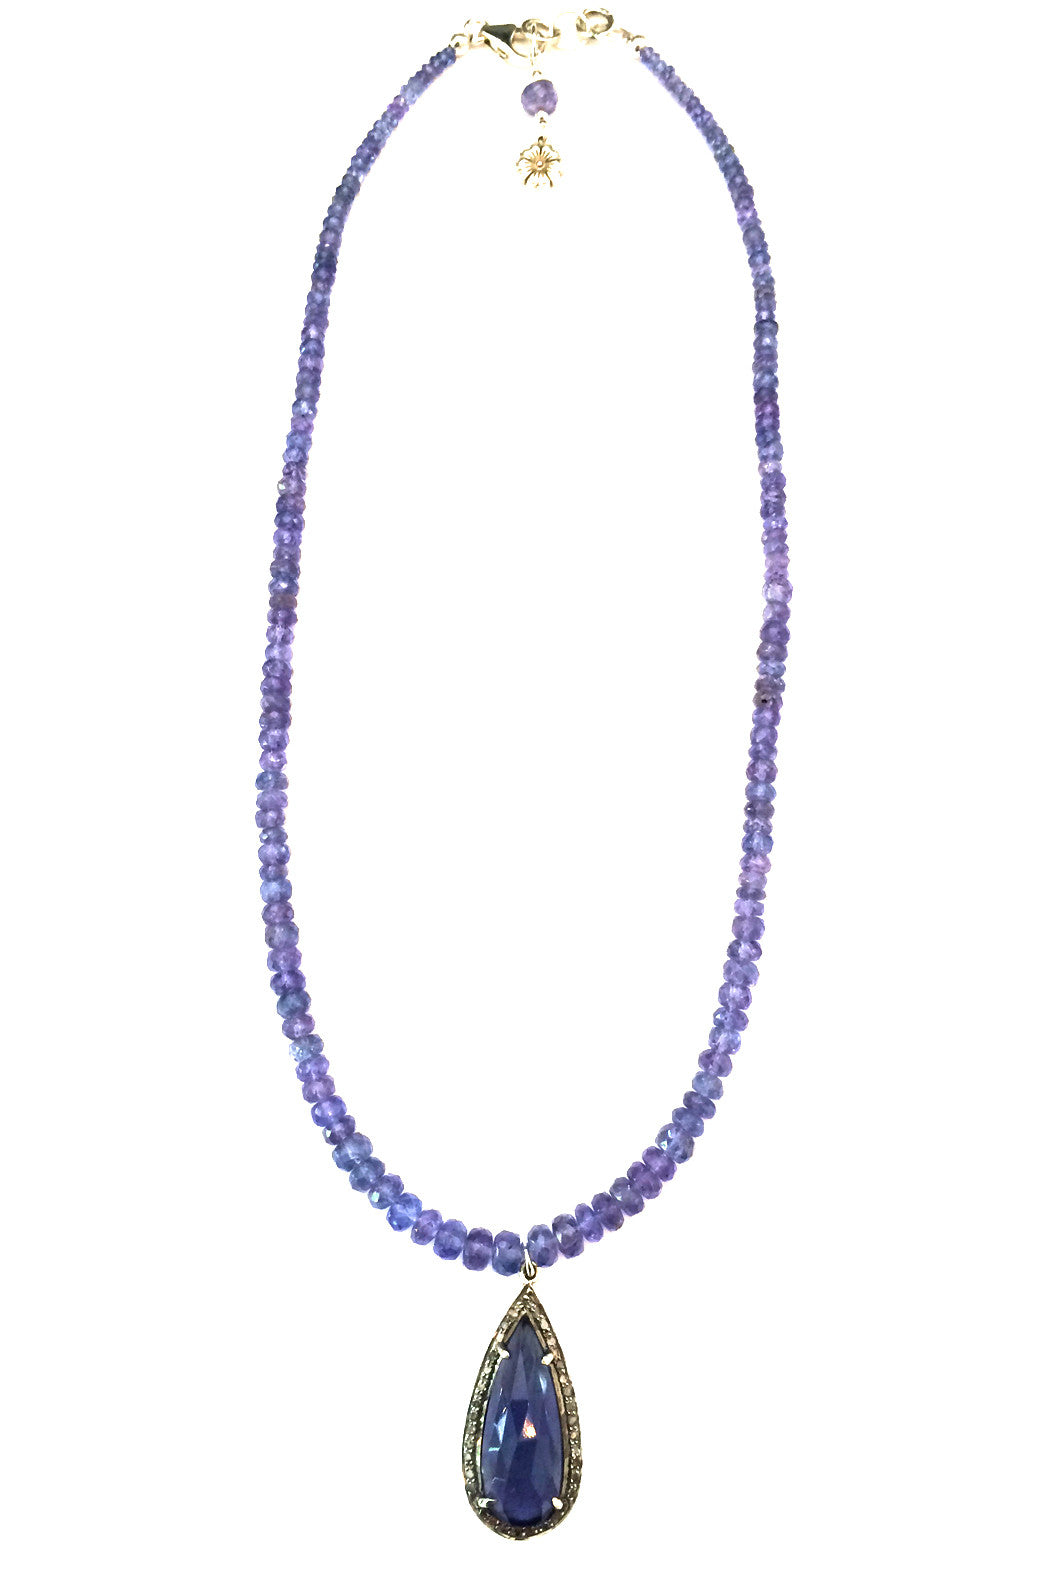 unio goldsmith products iolite necklace